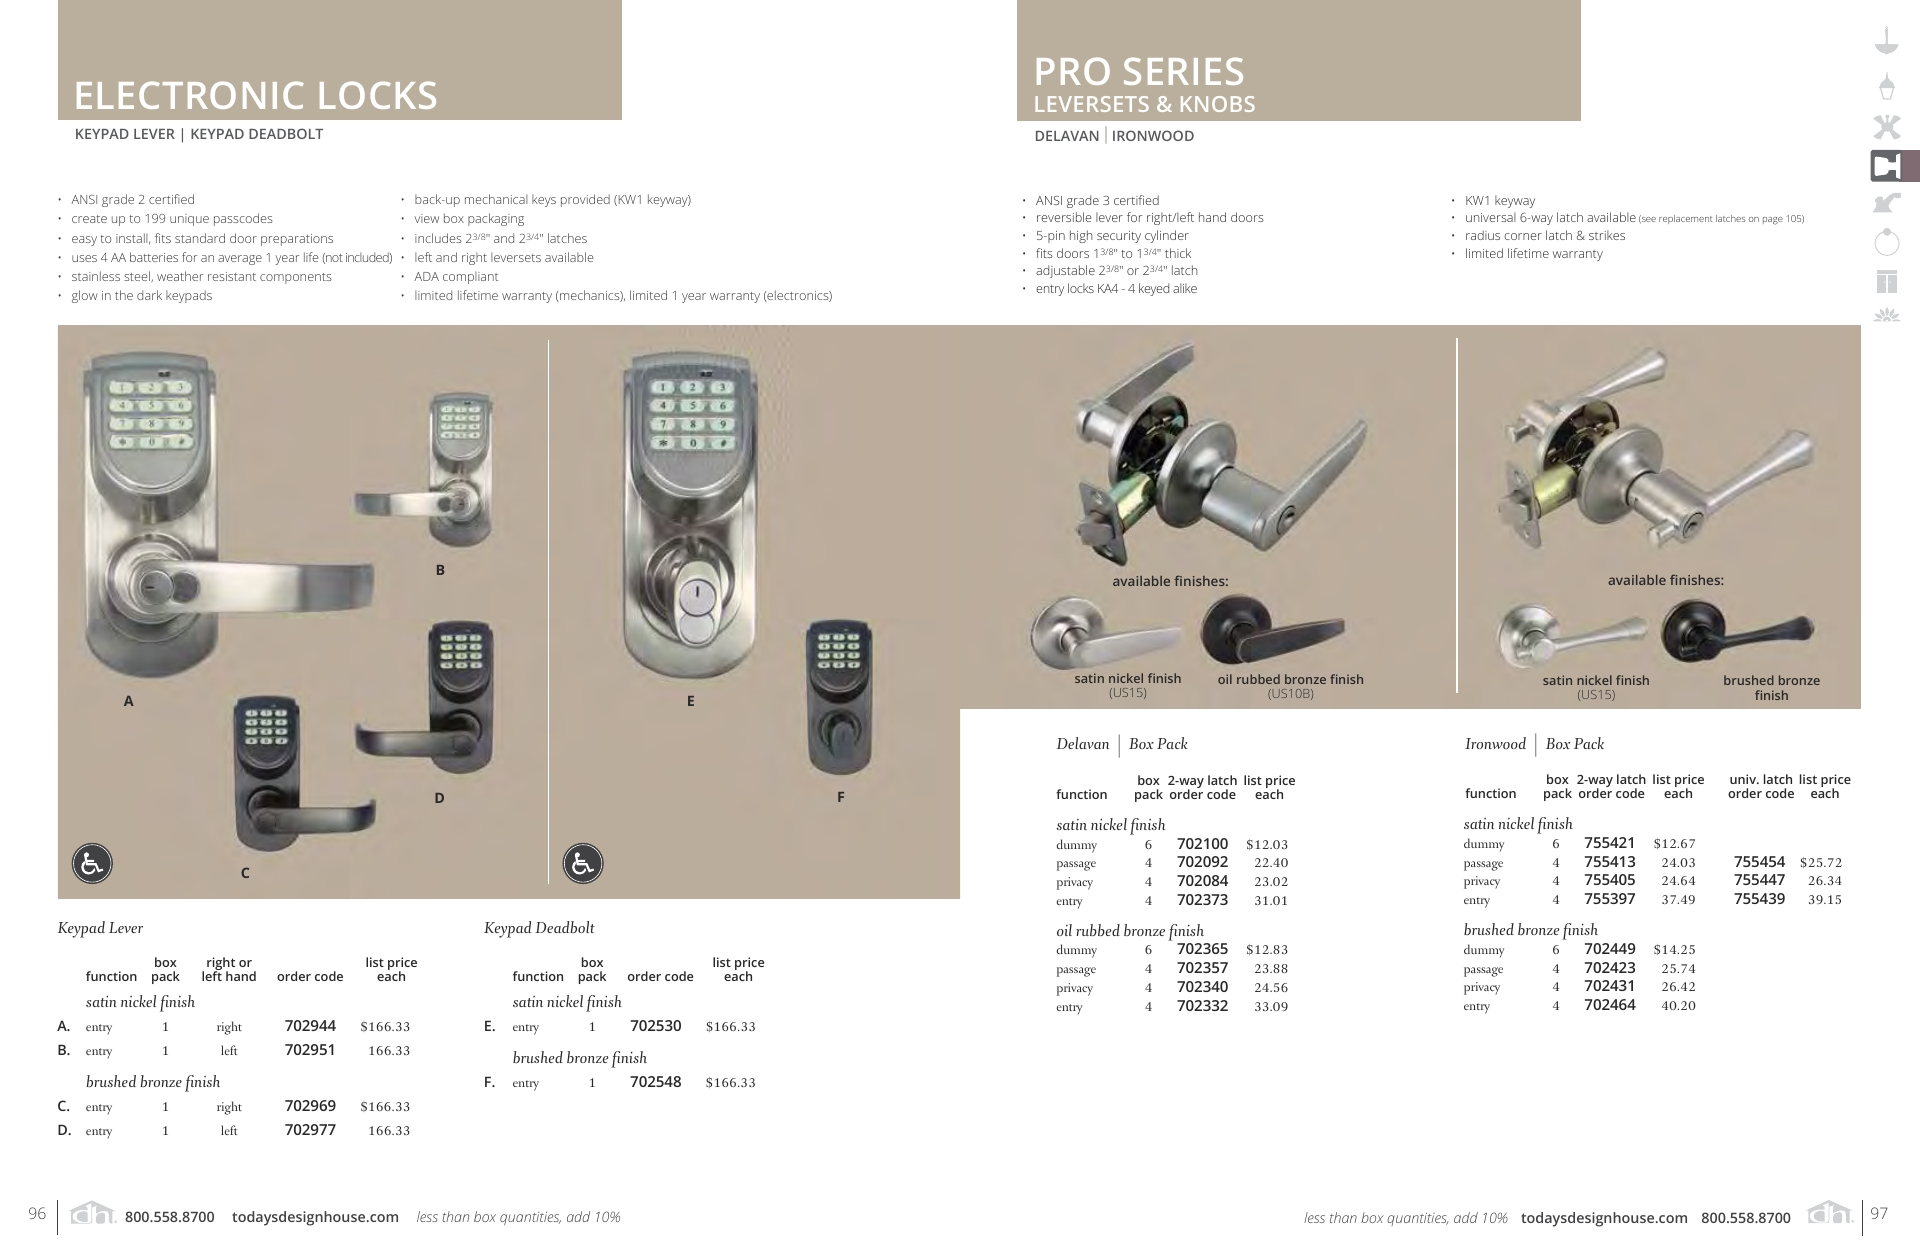 Electronic Locks and Pro Series Leversets & Knobs